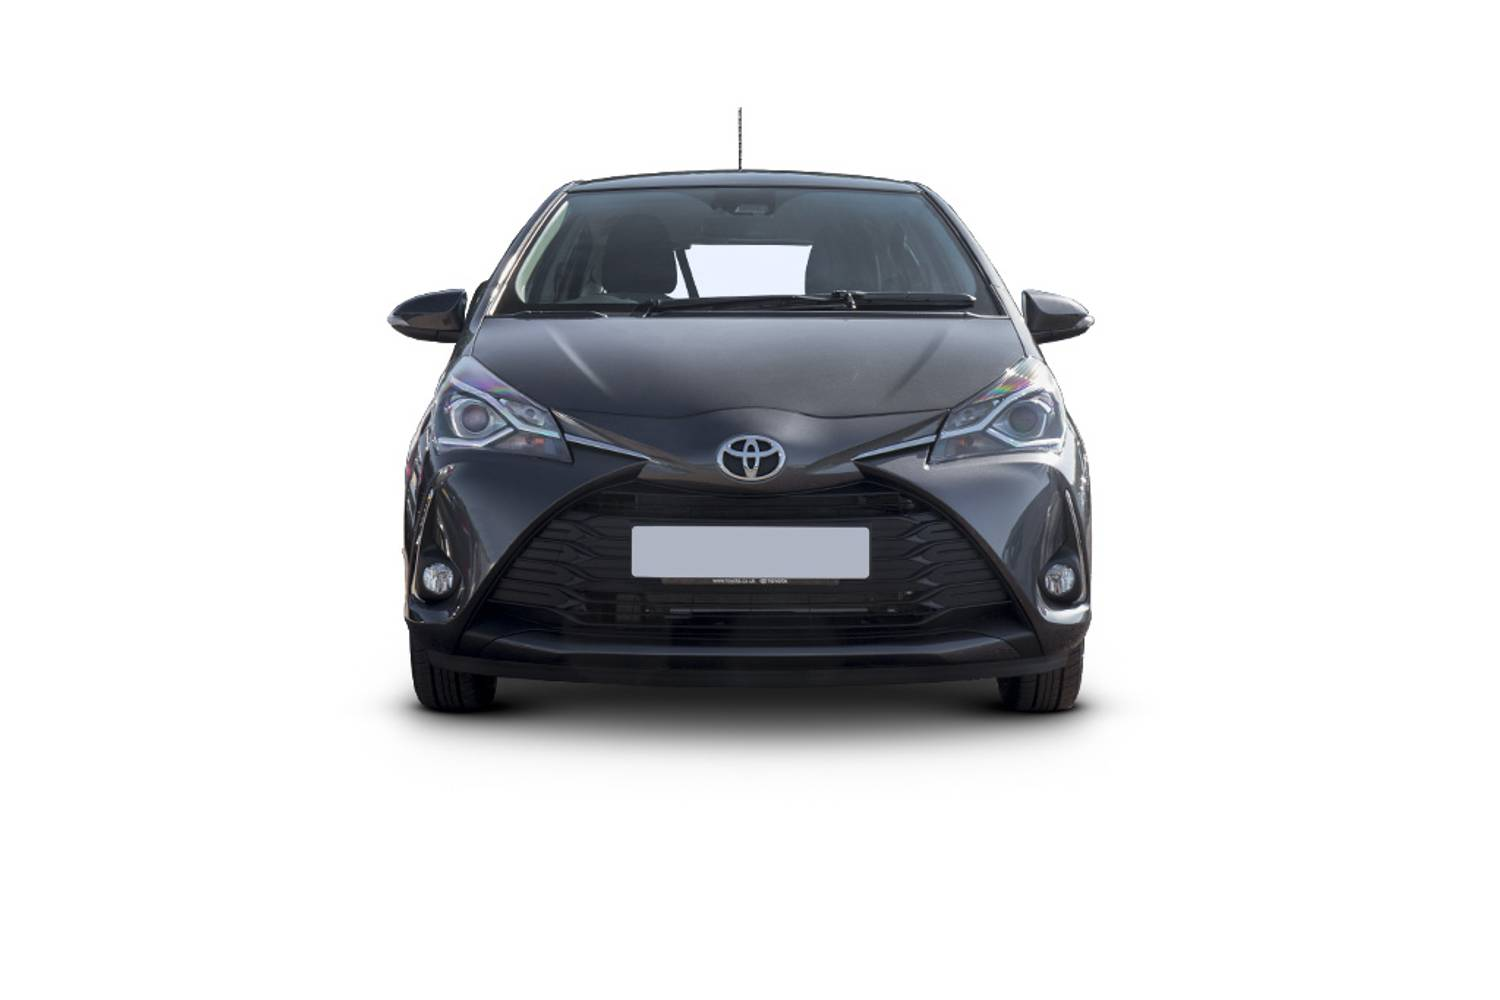 new toyota yaris hatchback 1 5 hybrid icon tech 5 door cvt 2017 for sale. Black Bedroom Furniture Sets. Home Design Ideas